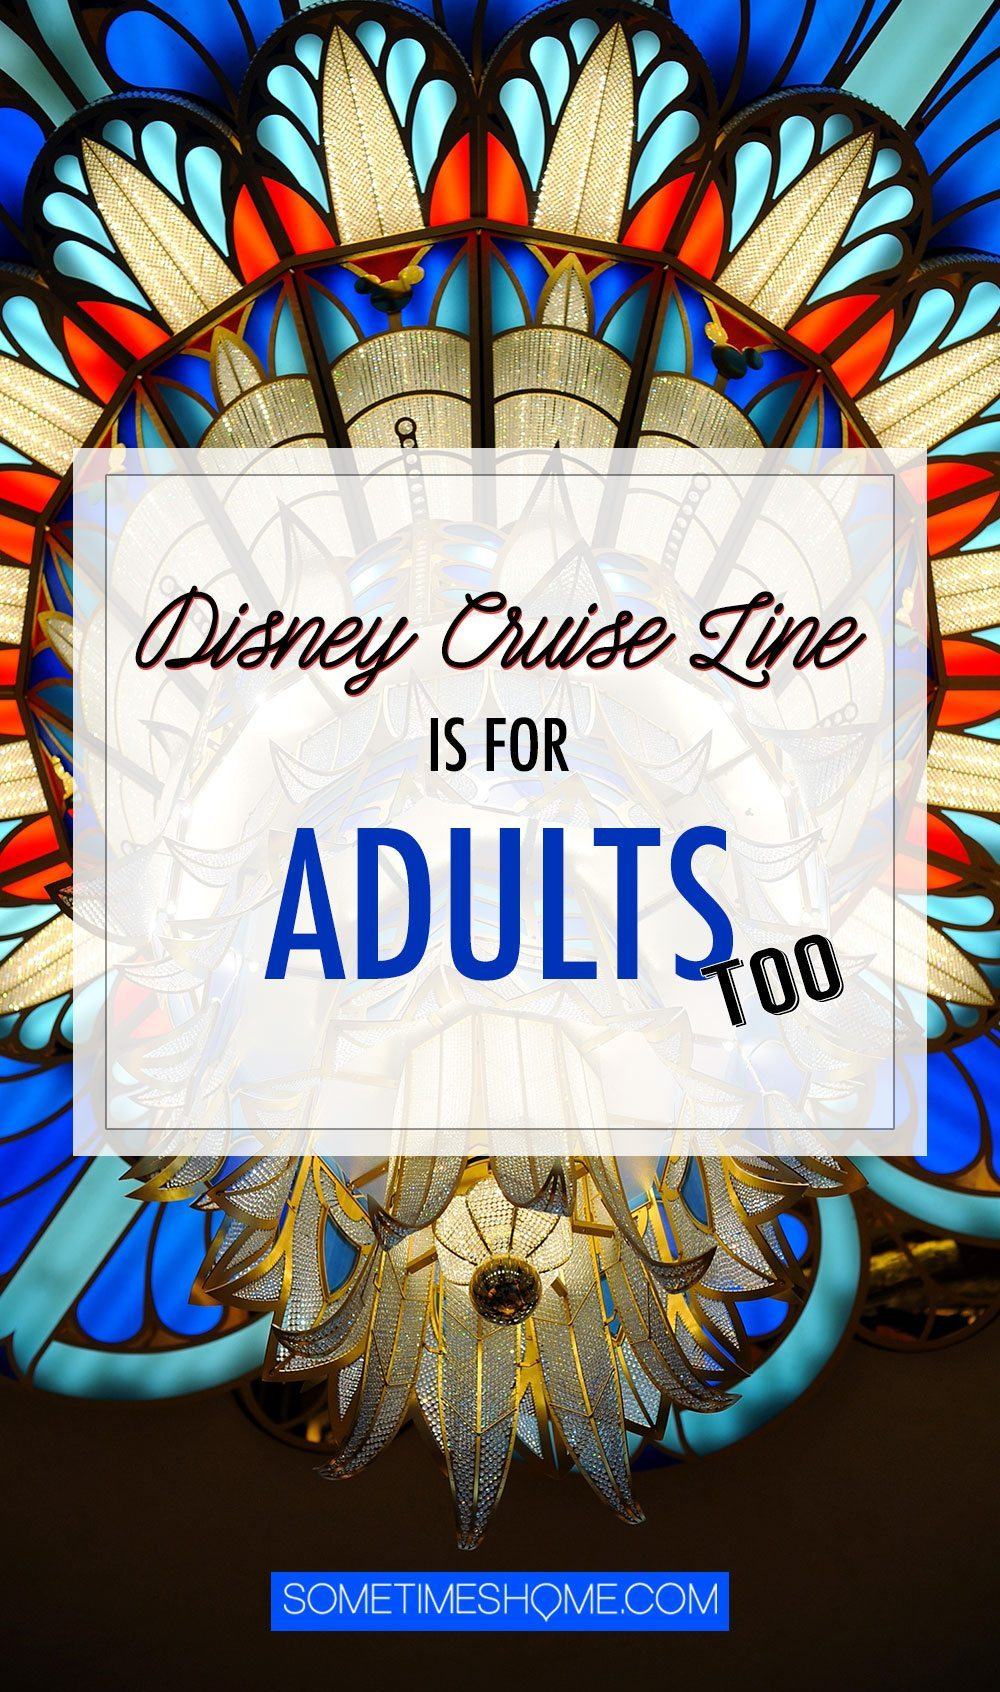 Disney Cruise Line is For Adults Too. Sometimes Home travel blog insight and info into DCL's adult only activities and areas.